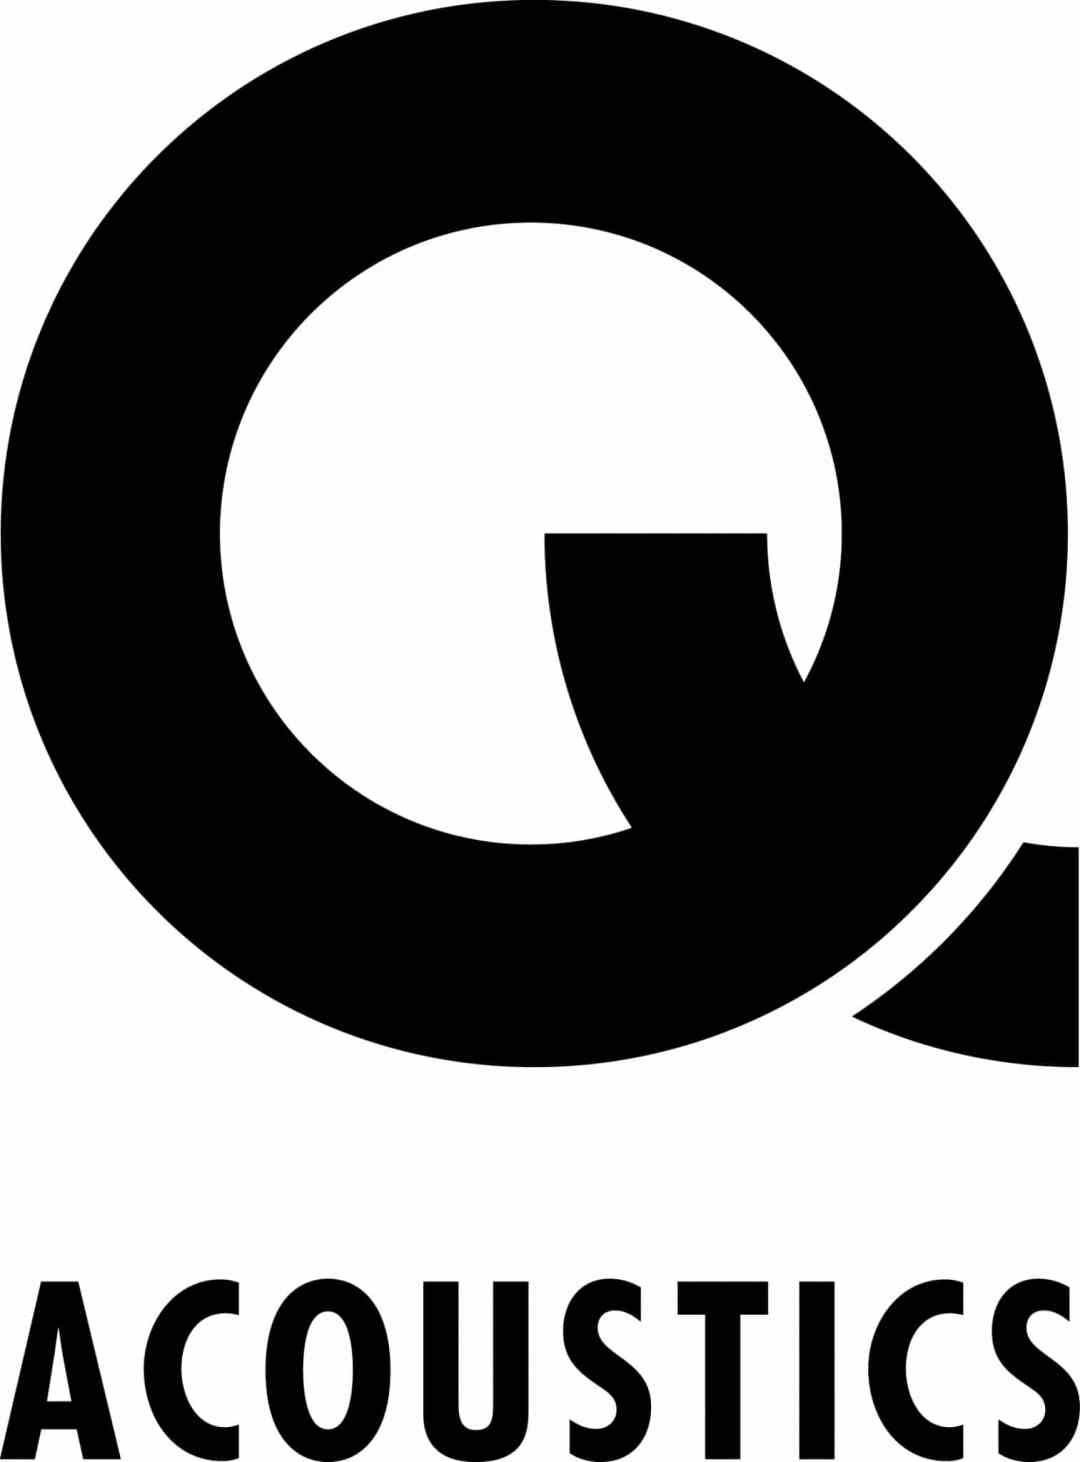 q_acoustics_logo_black_solid